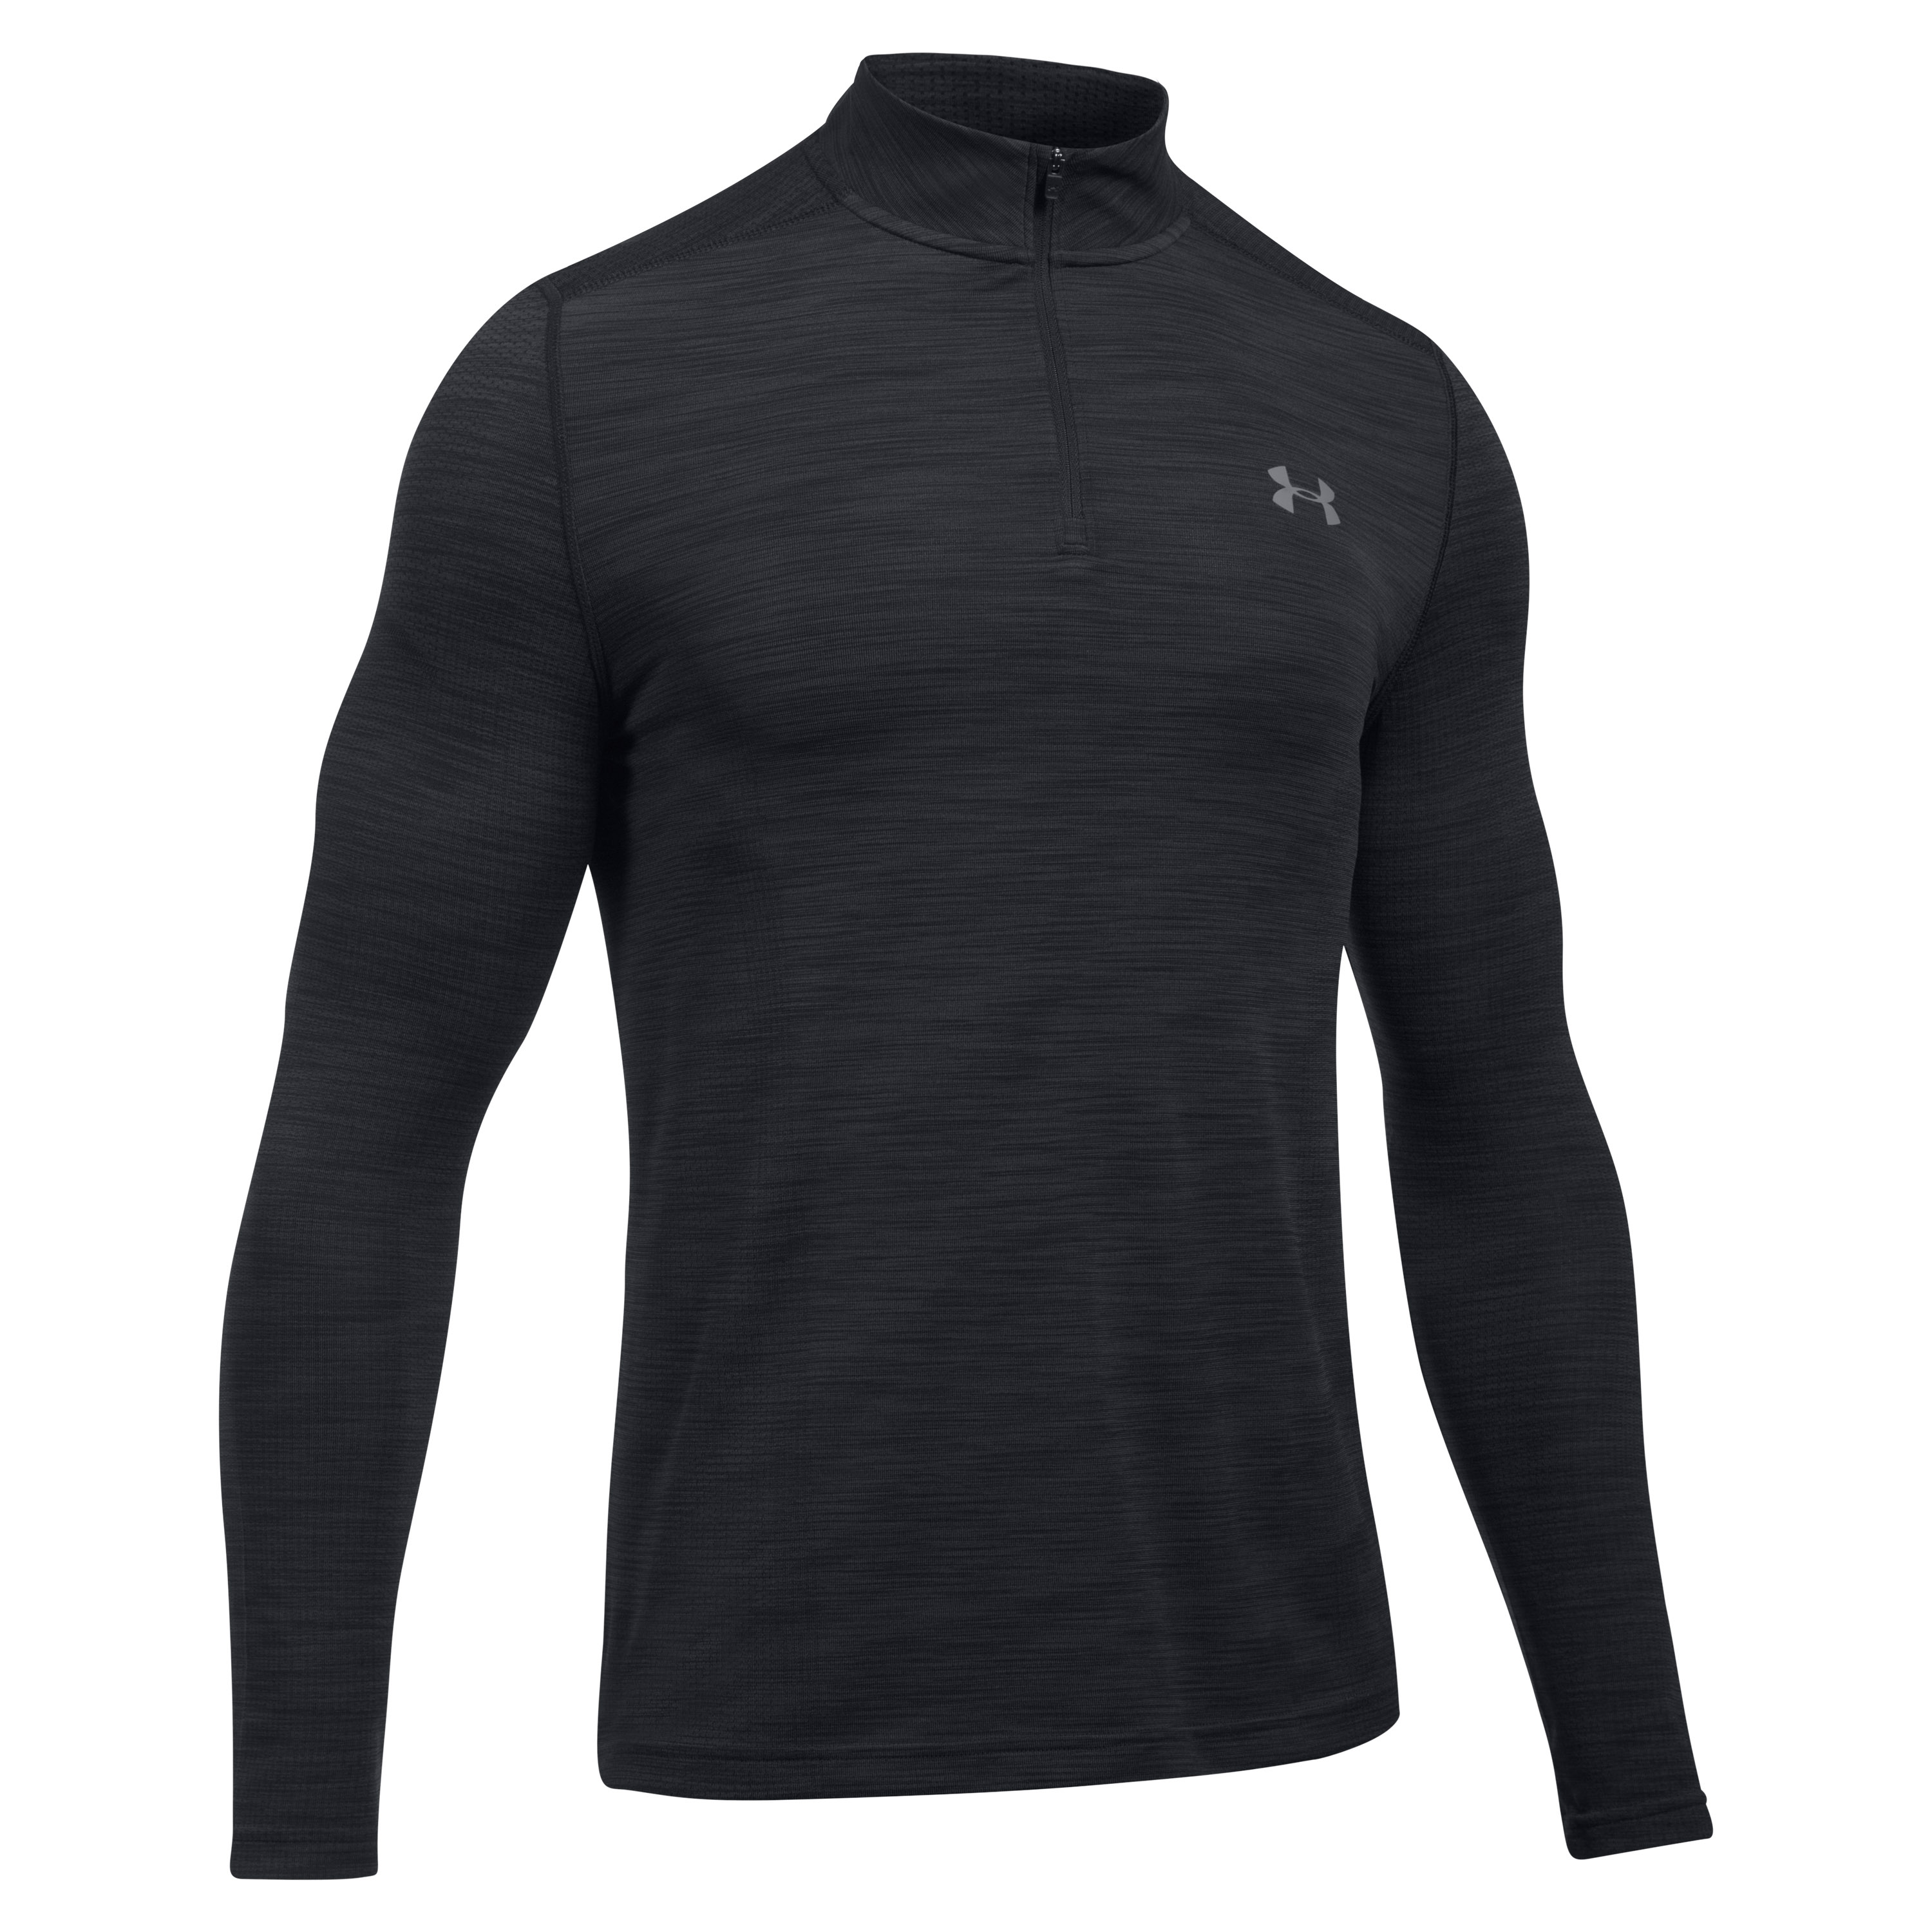 Under Armour Langarmshirt Threadborne 1/4 Zip schwarz